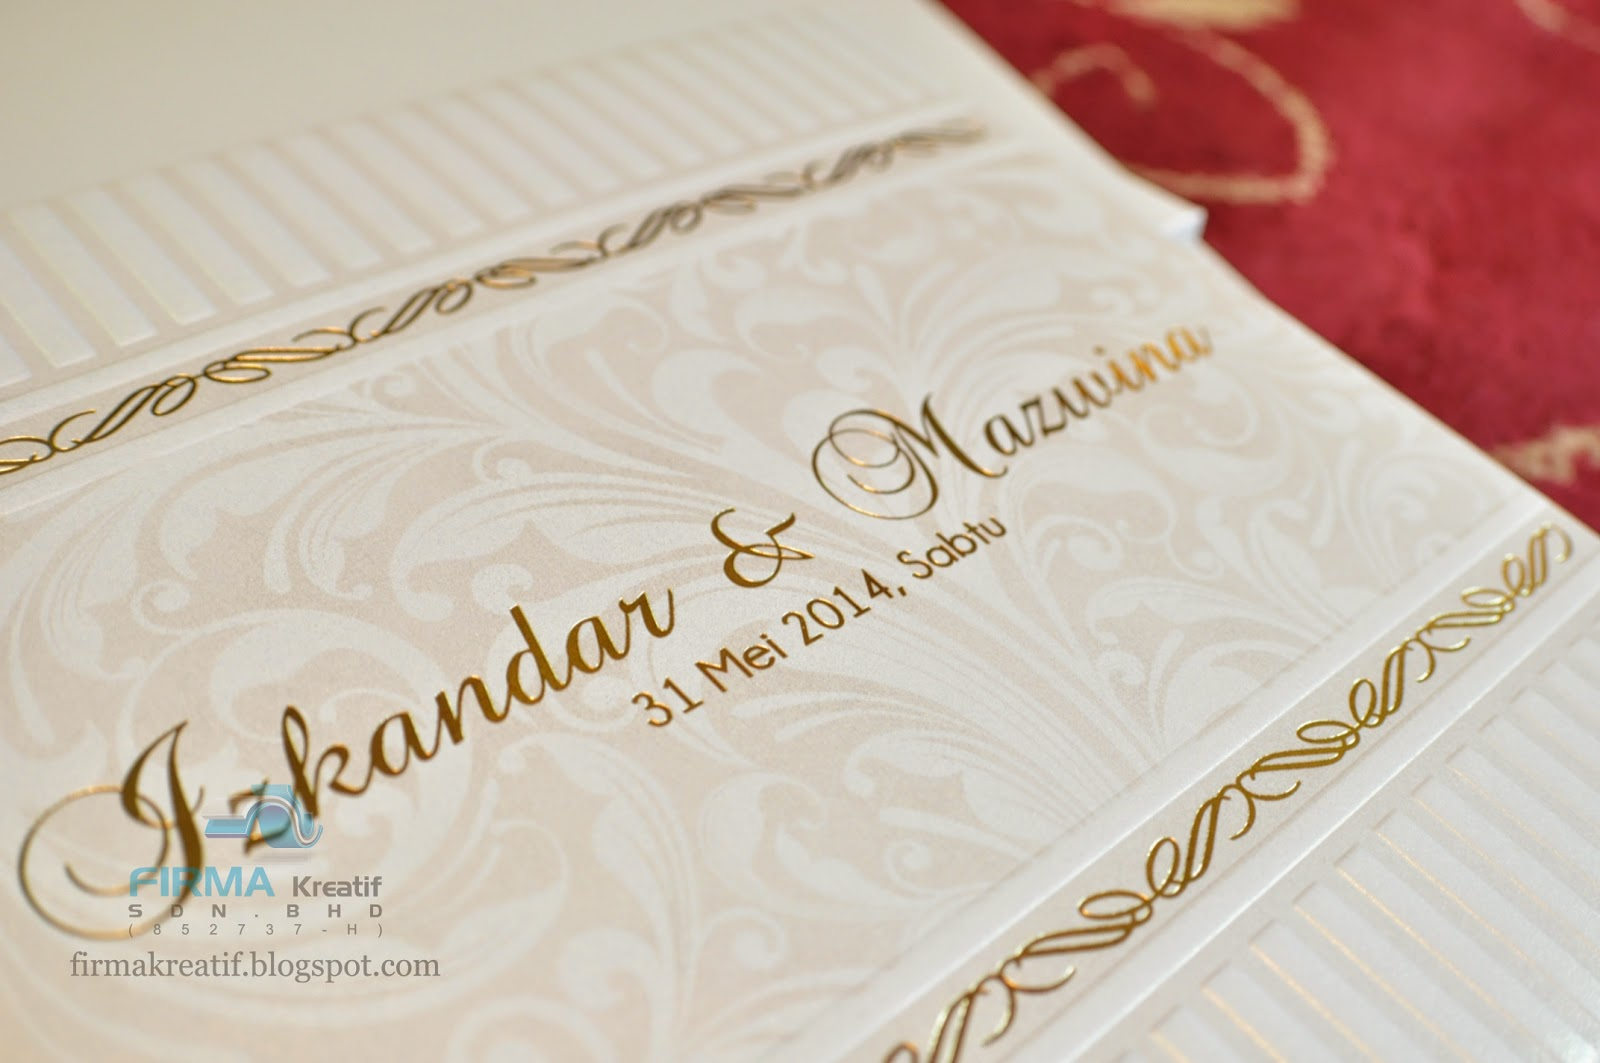 Wedding card hardcover izkandar mazwina firma kreatif sdn bhd wedding card hardcover izkandar mazwina stopboris Gallery